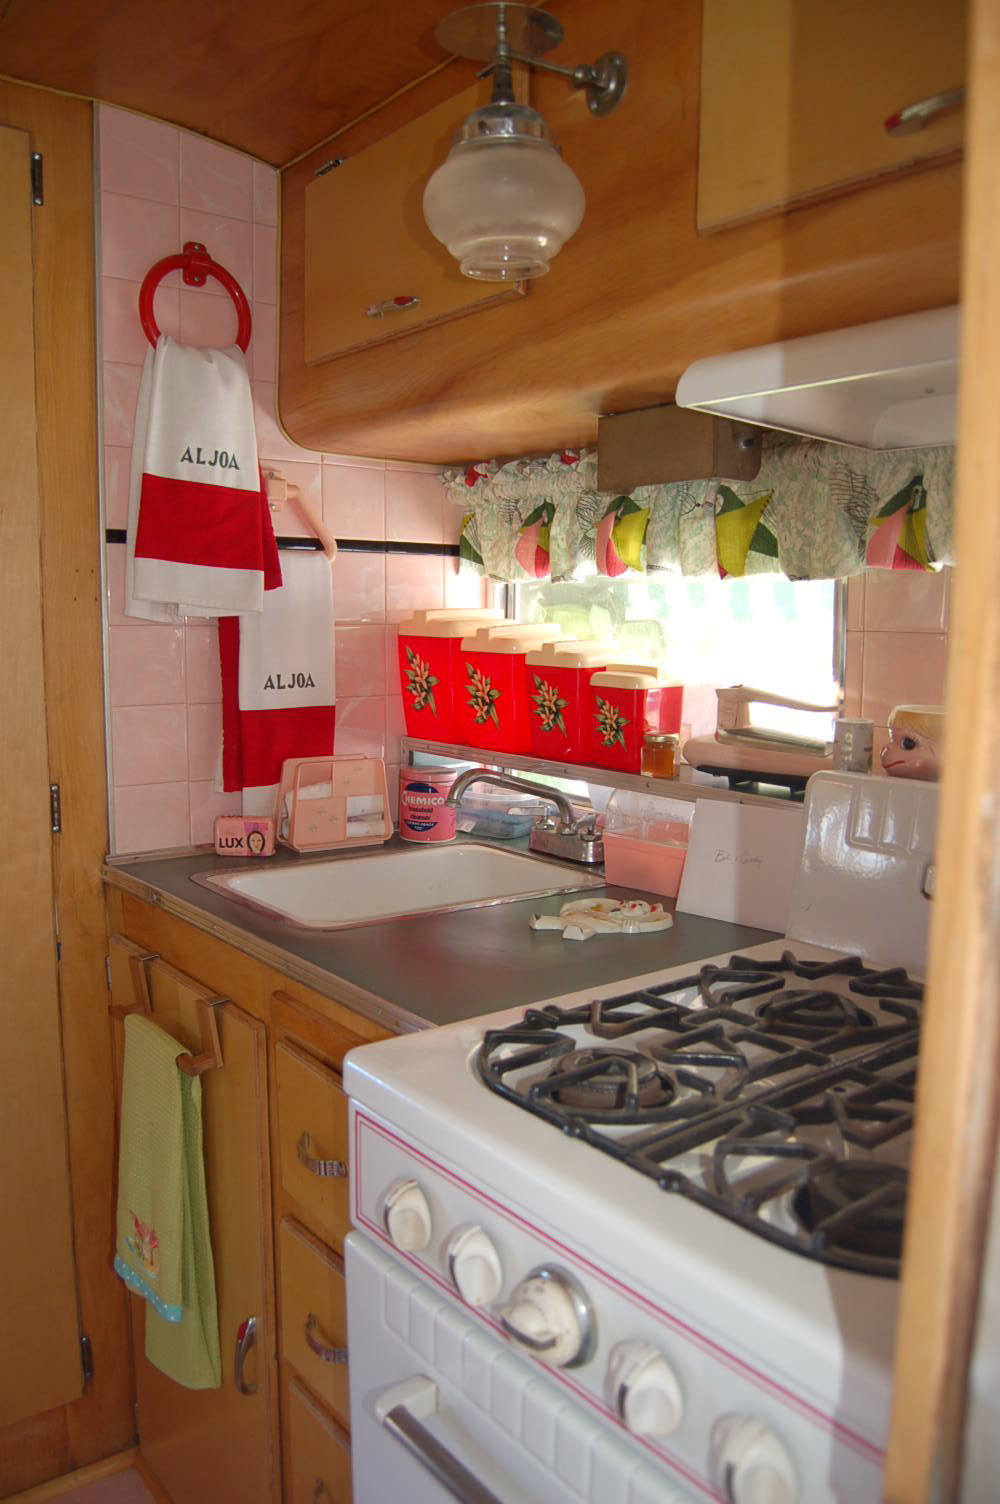 Camper Trailer Kitchen Designs Vintage Aljoa Trailer Pictures And History From Oldtrailercom